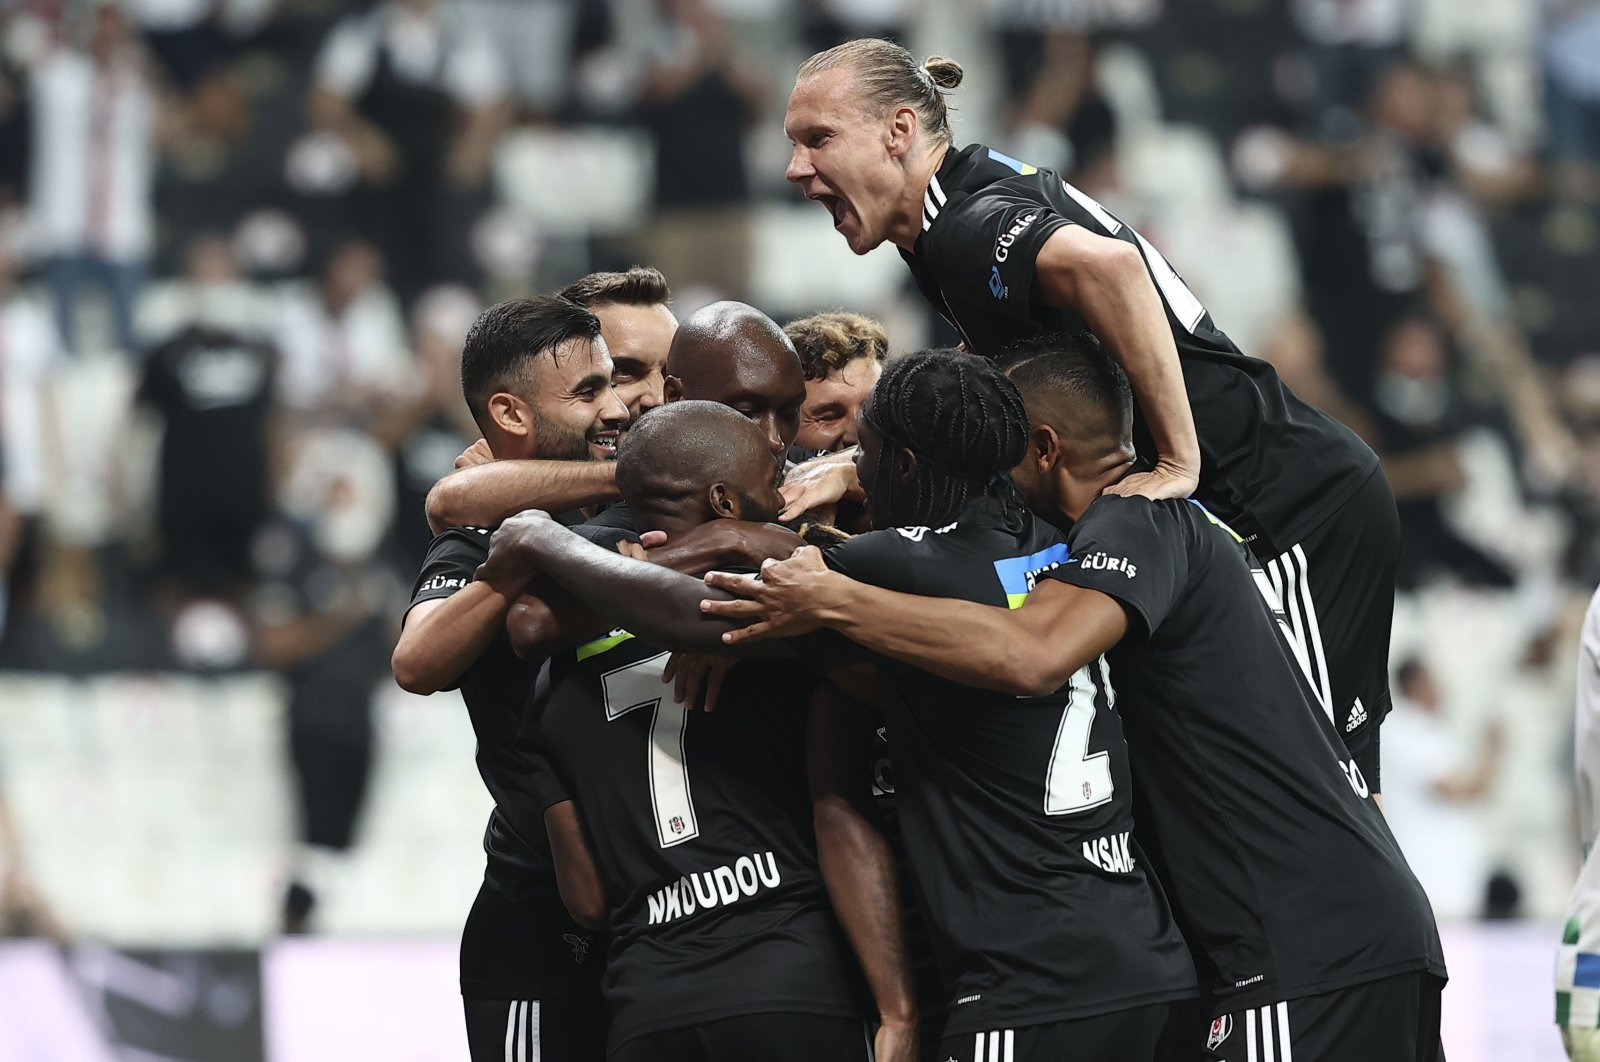 Beşiktaş club captain Atiba Hutchinson celebrates with his teammates after he scores the second goal for his team in a 3-0 win against Rizespor in the first match of the season at Vodafone Arena, Istanbul, Turkey, Aug. 13, 2021. (AA Photo)